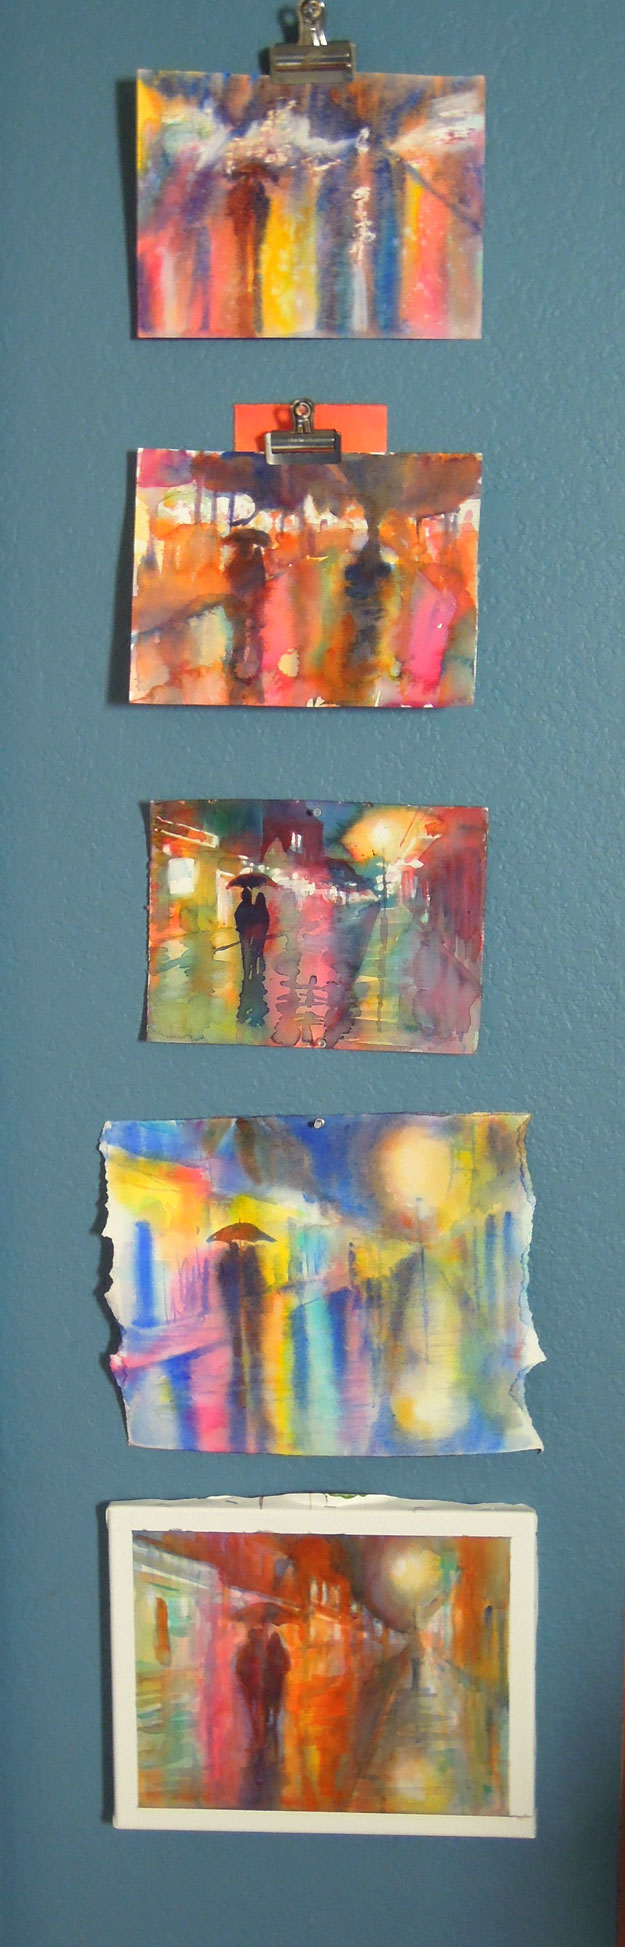 new orleans rainy night watercolor painting studies